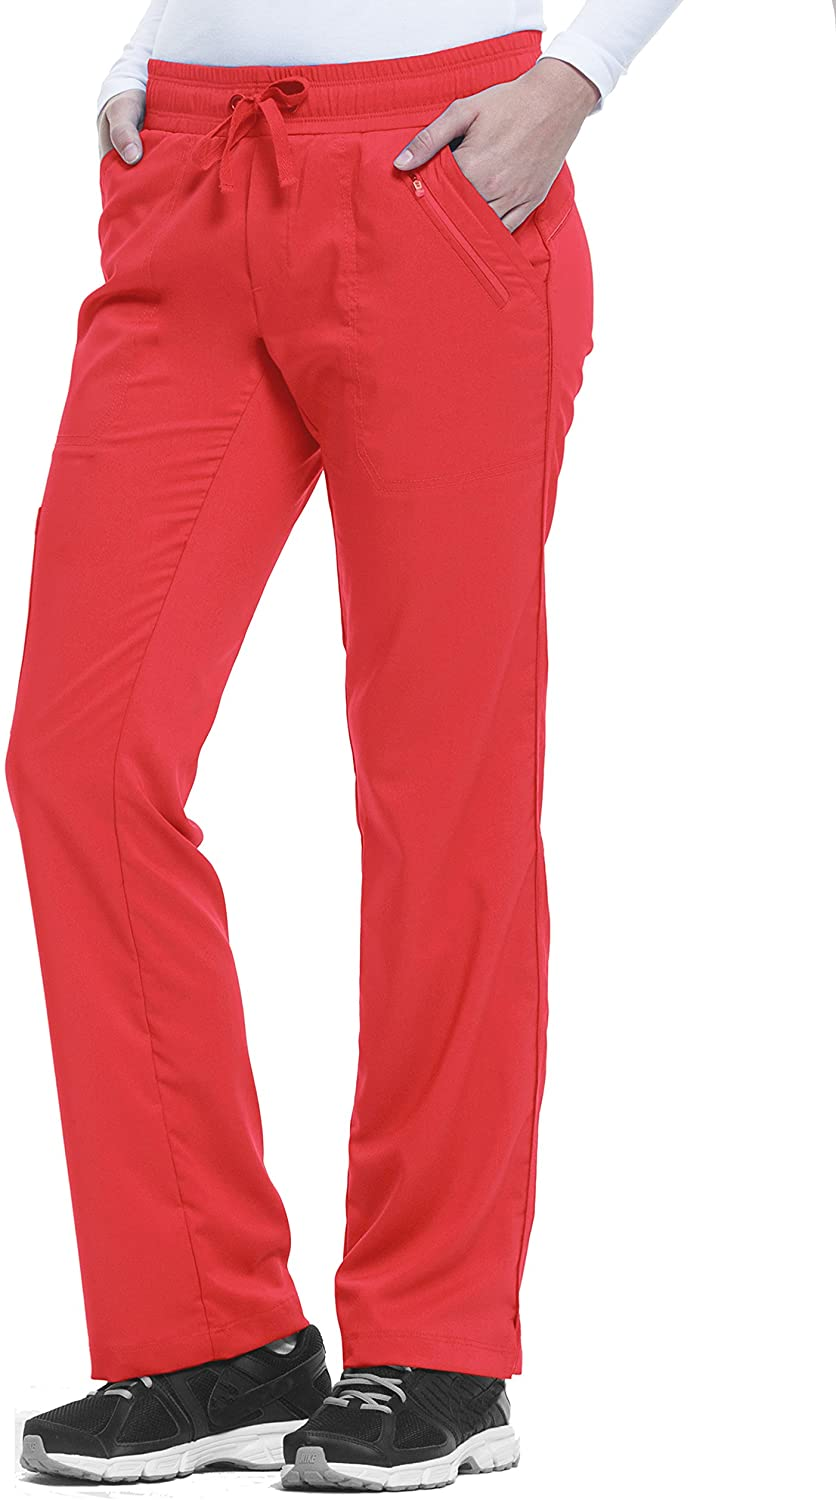 healing hands Purple Label Women's Tanya 9139 Drawstring Pant Red Spice- Small